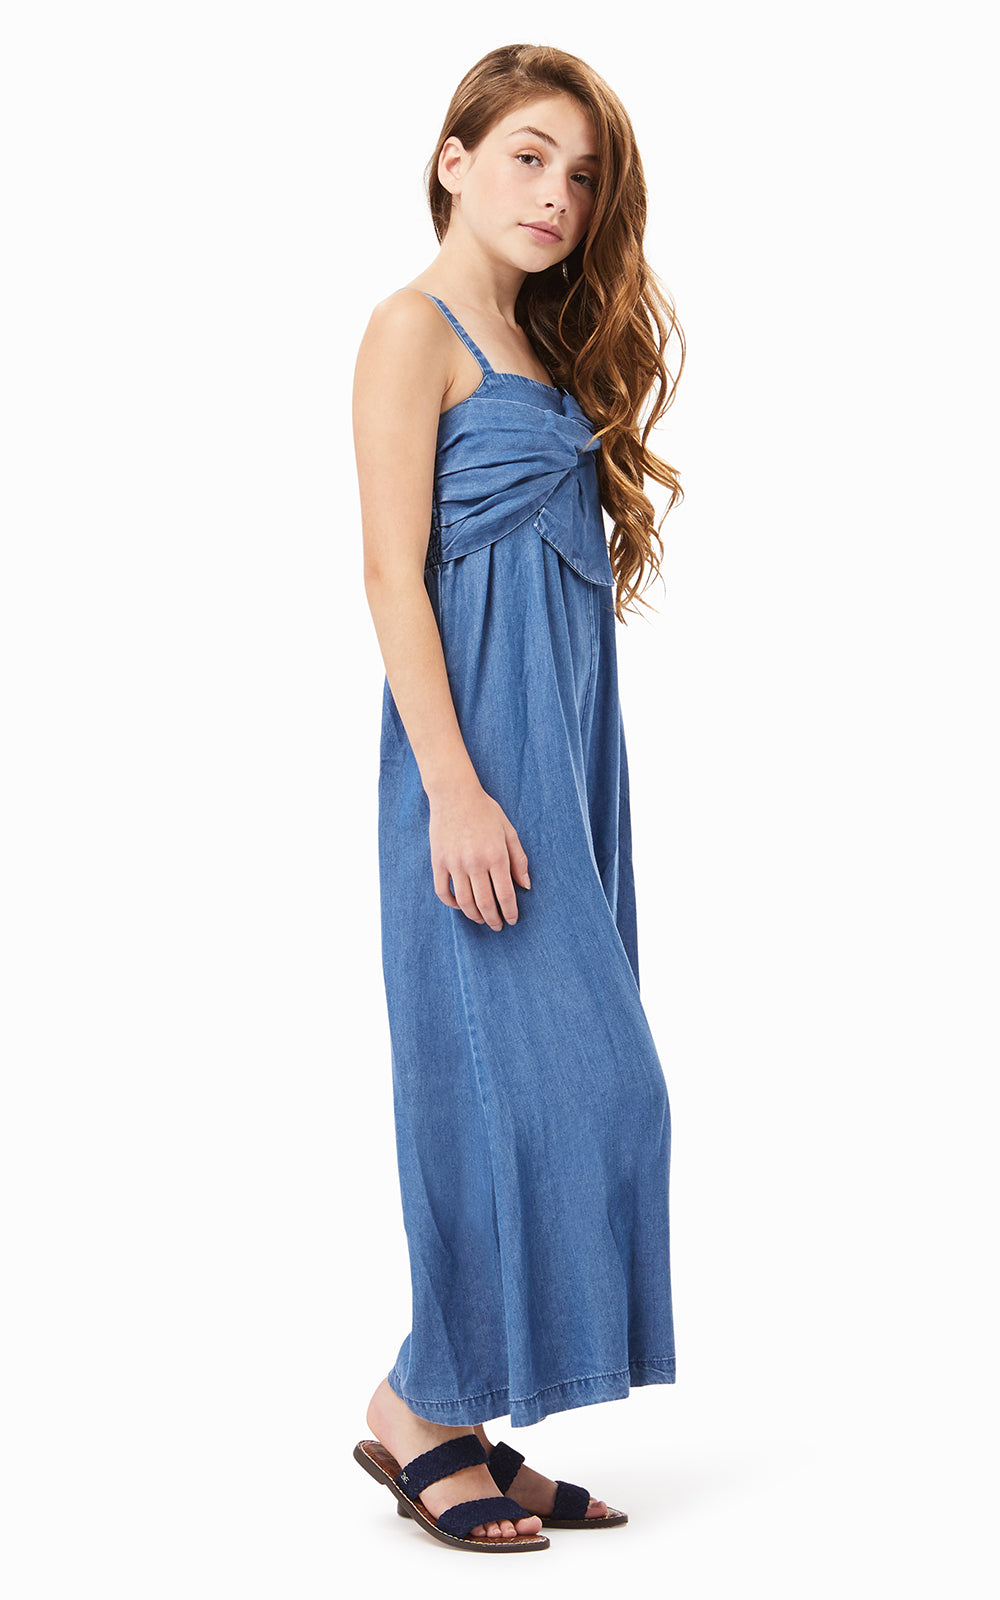 Eden Twist Jumpsuit | 4-6X - Habitual